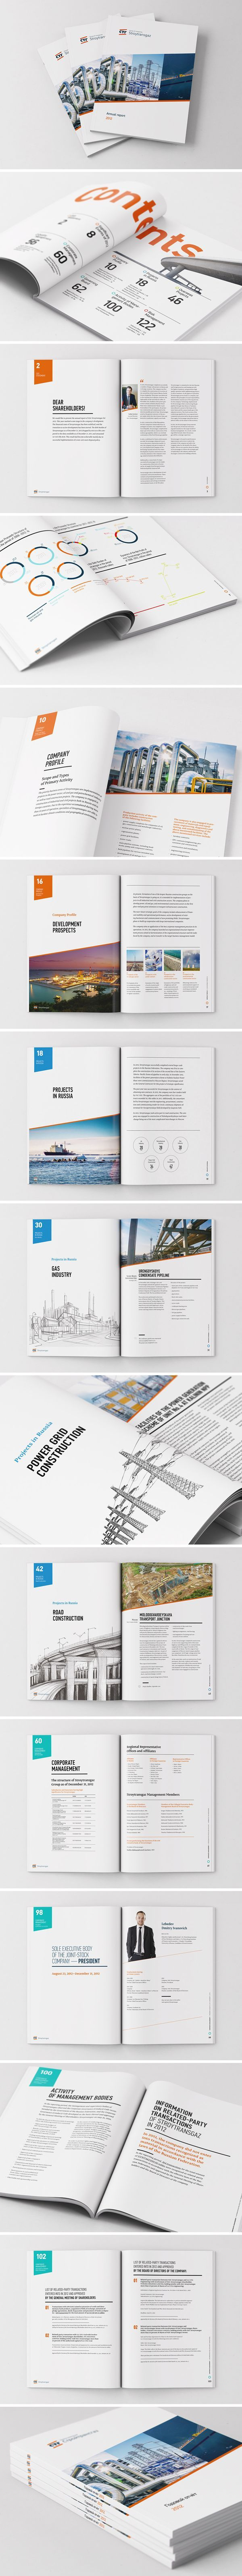 Stroytransgaz annual report by Praxis Advance, via Behance: